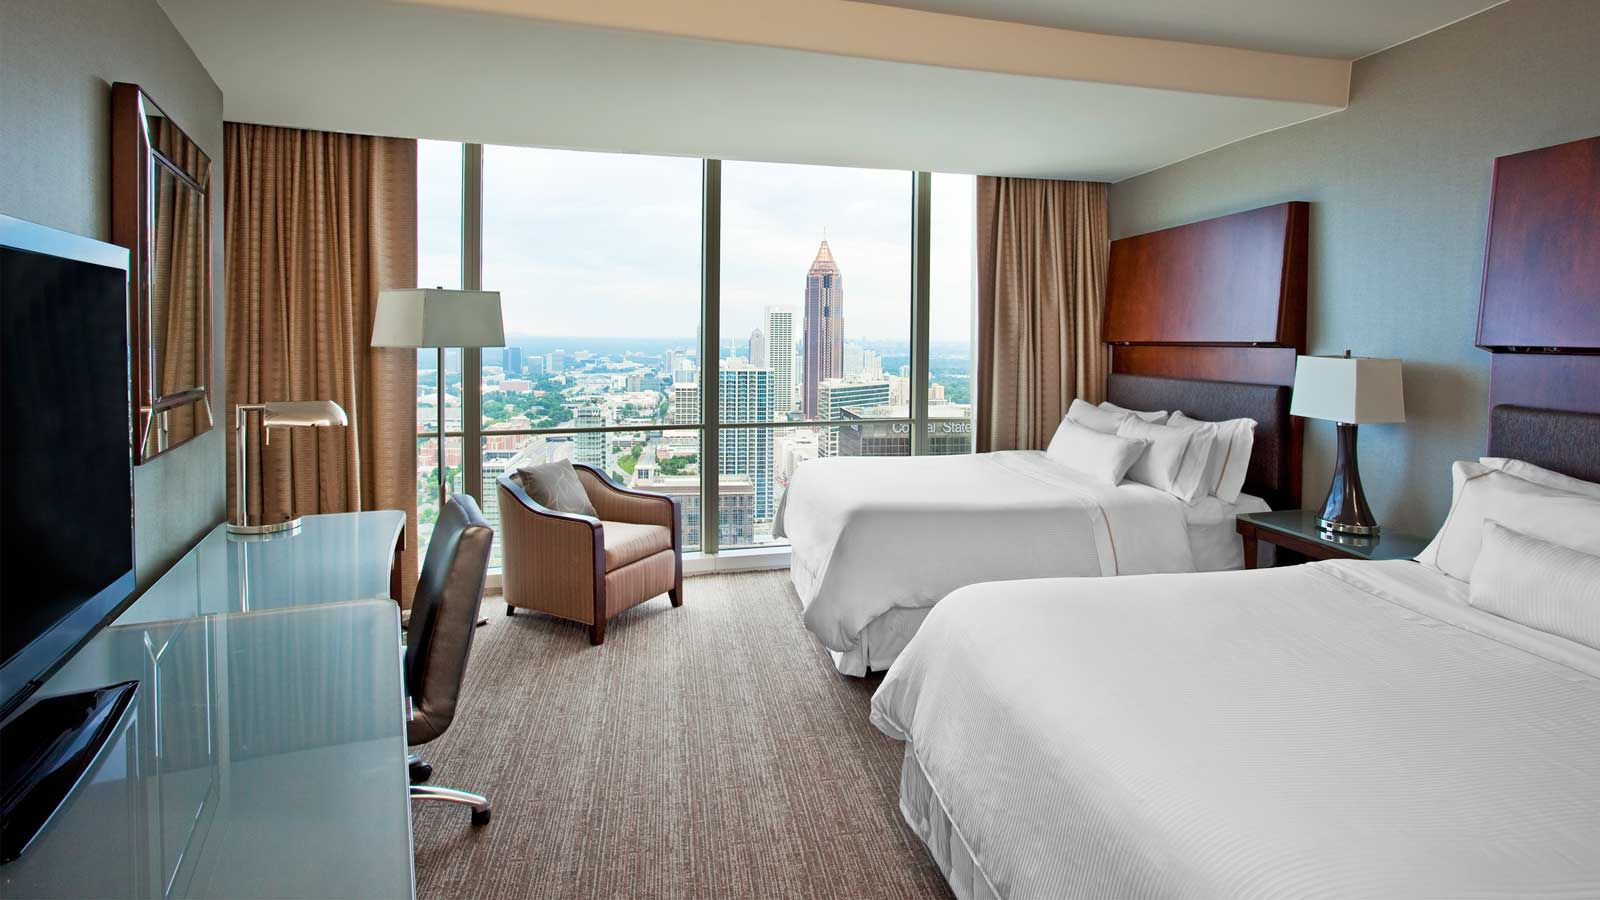 The Westin Peachtree Plaza, Atlanta - Guest Room